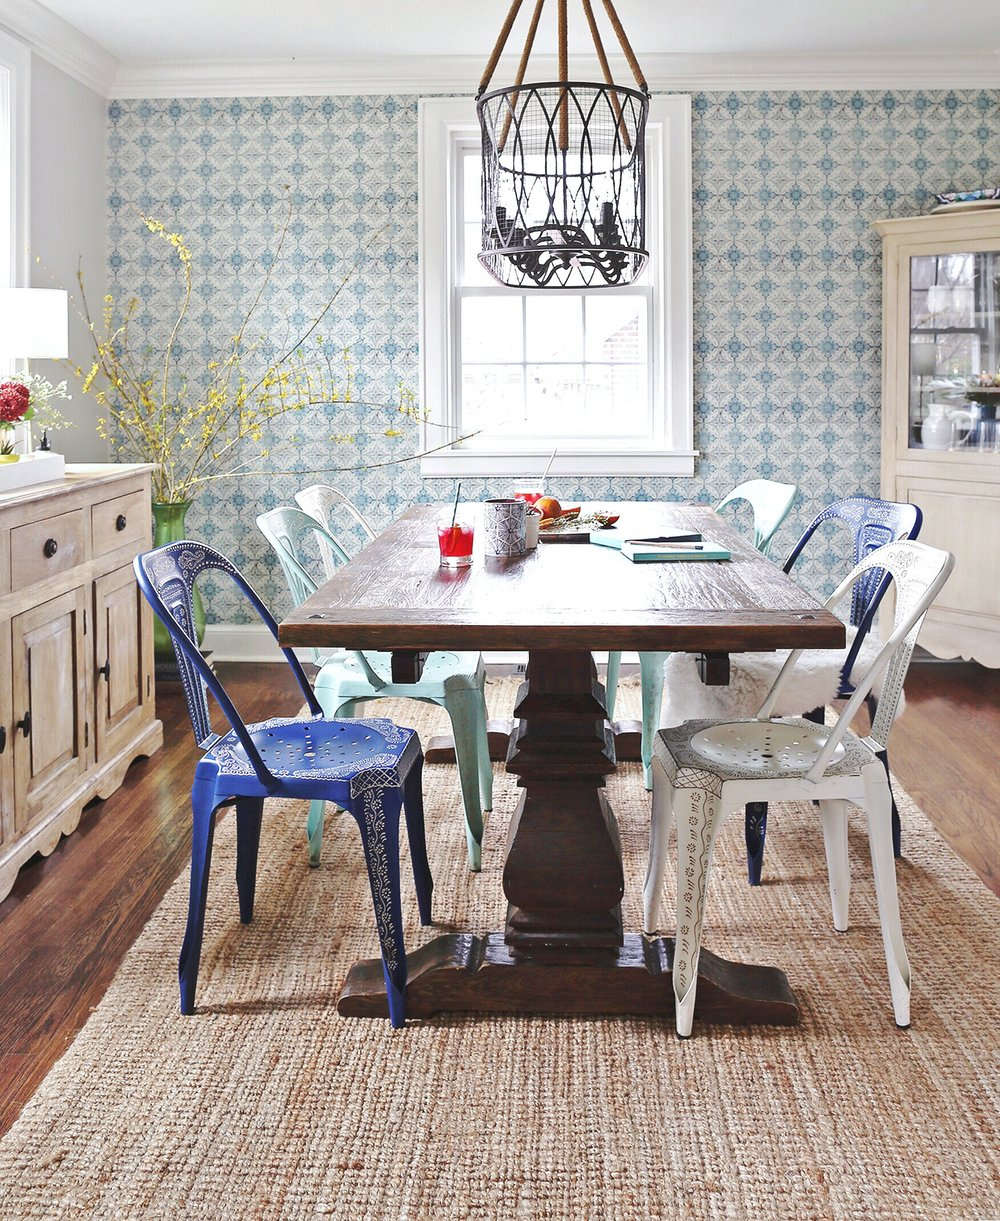 A Bright and Colorful Nashville Dining Room | Life of Plenty Home